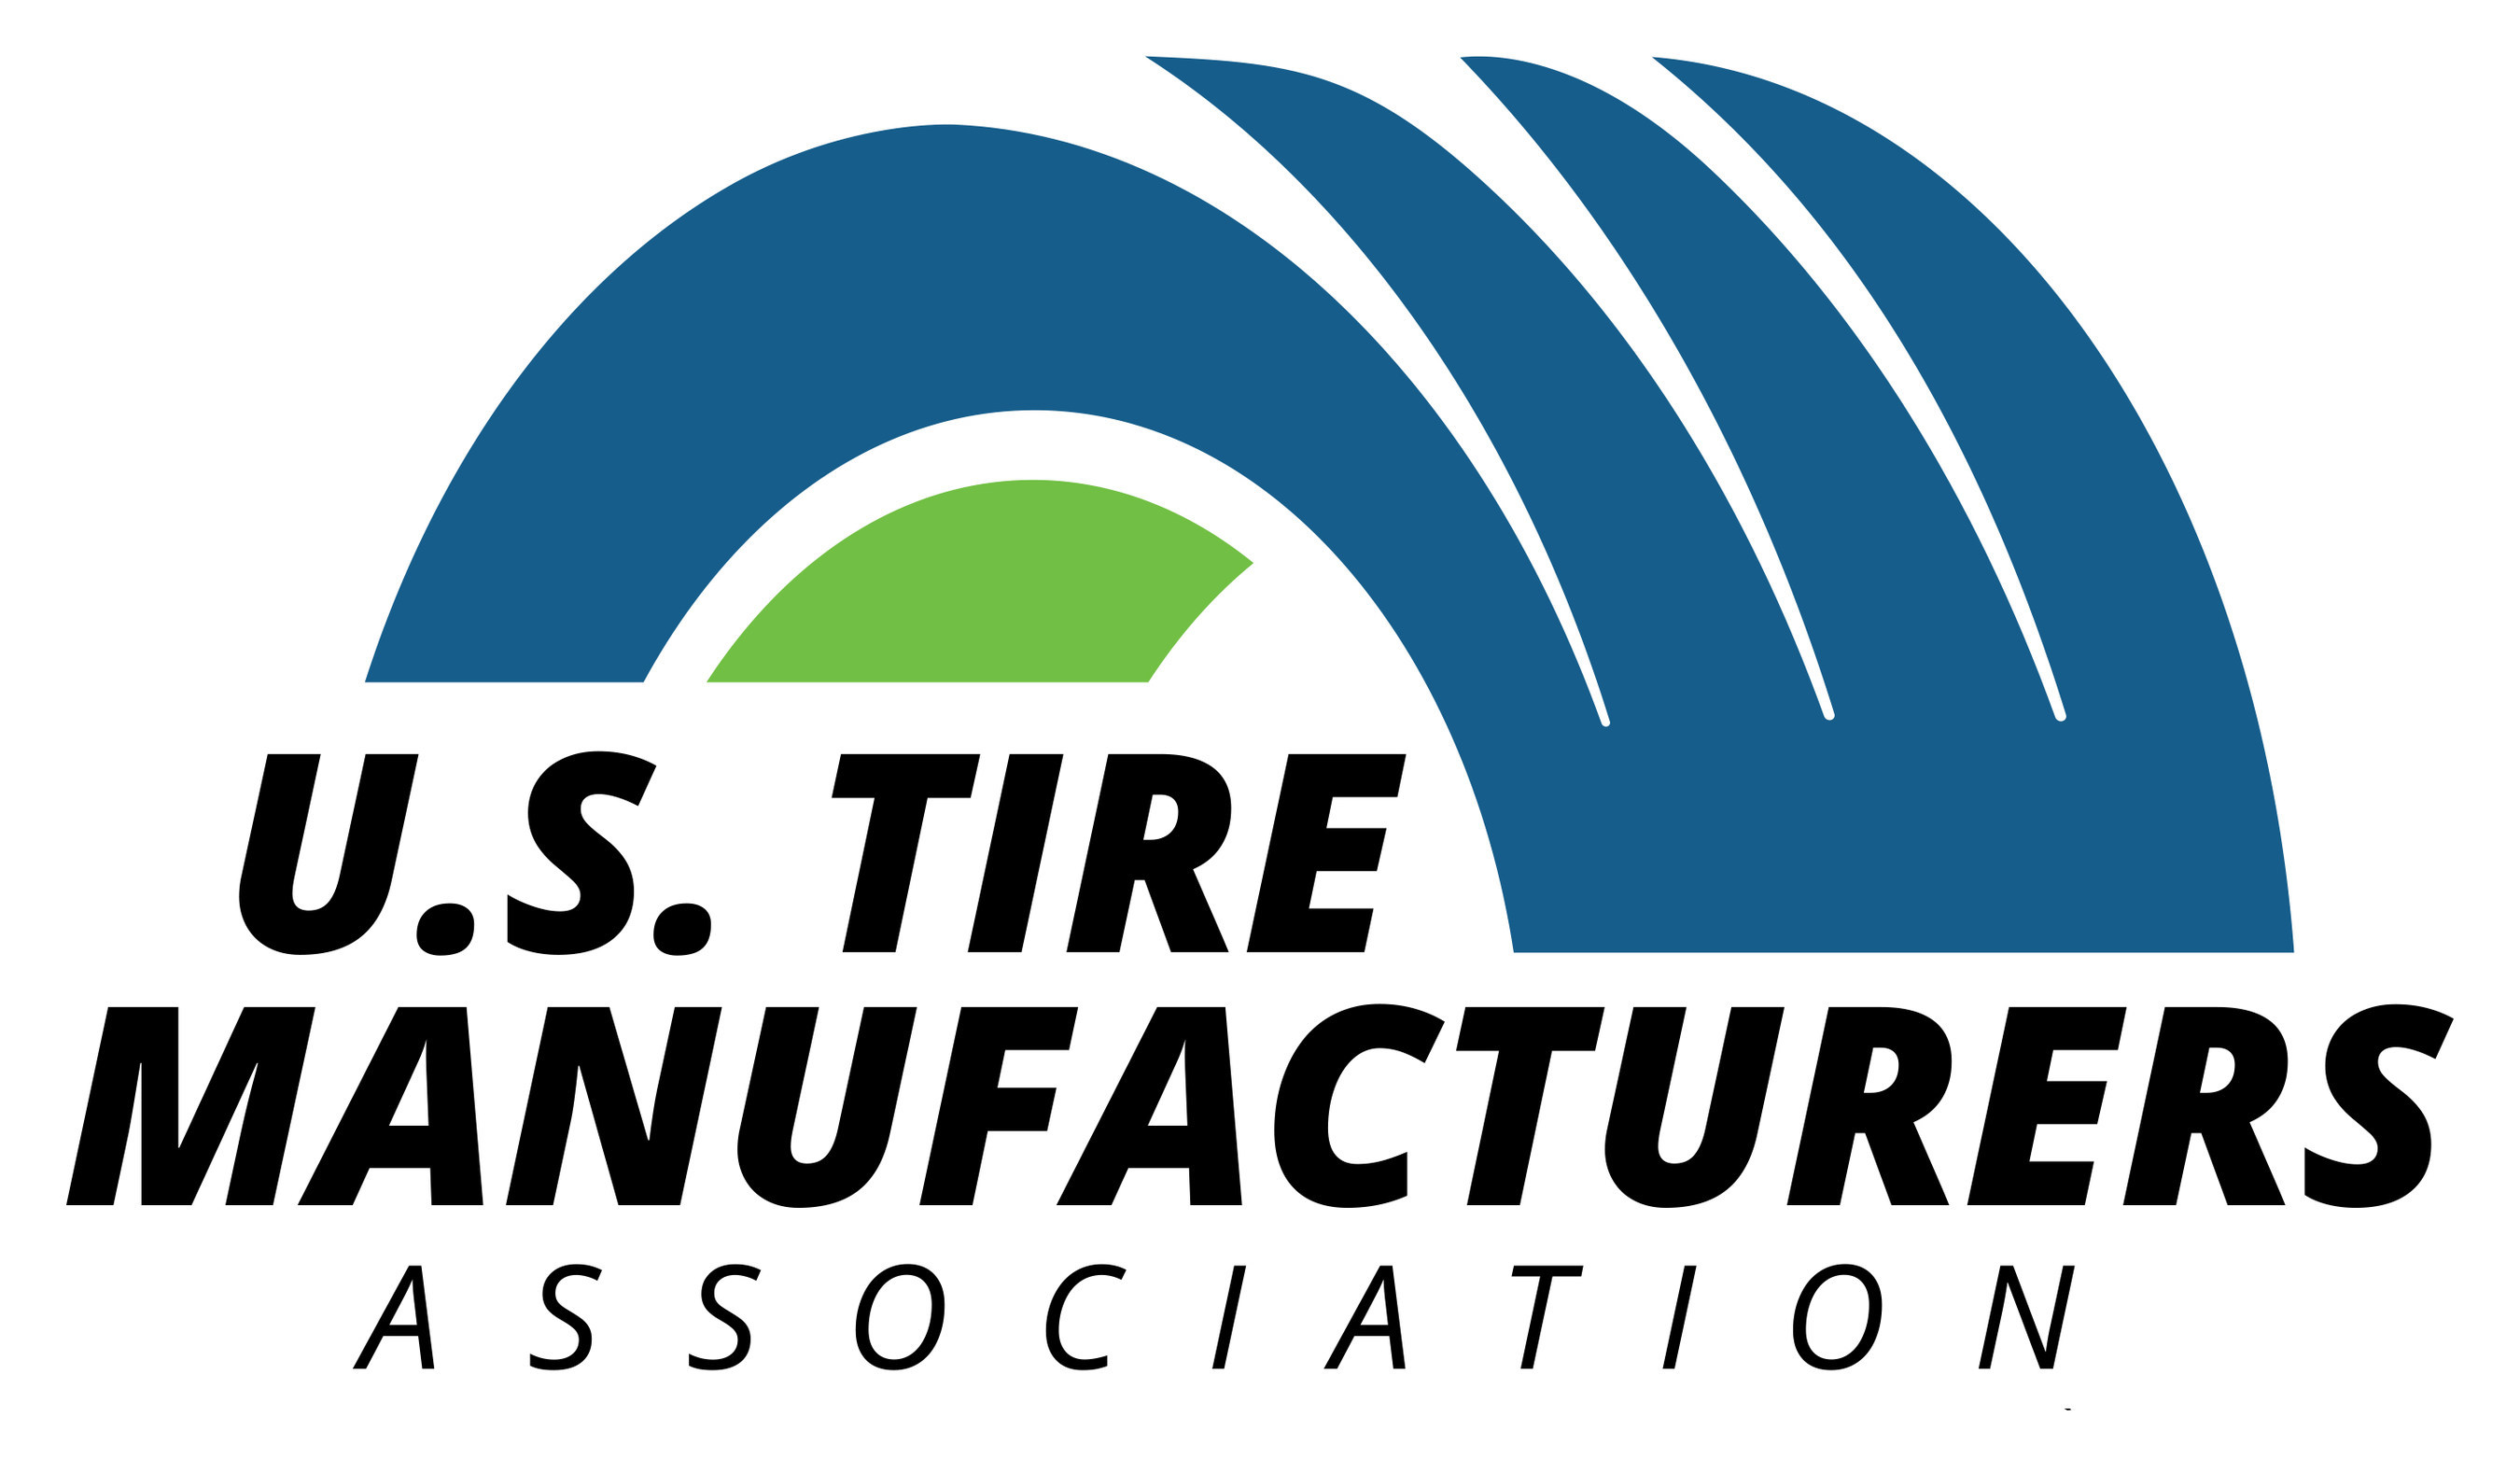 The U.S. Tire Manufacturers Association (PRNewsfoto/U.S. Tire Manufacturers Associa)